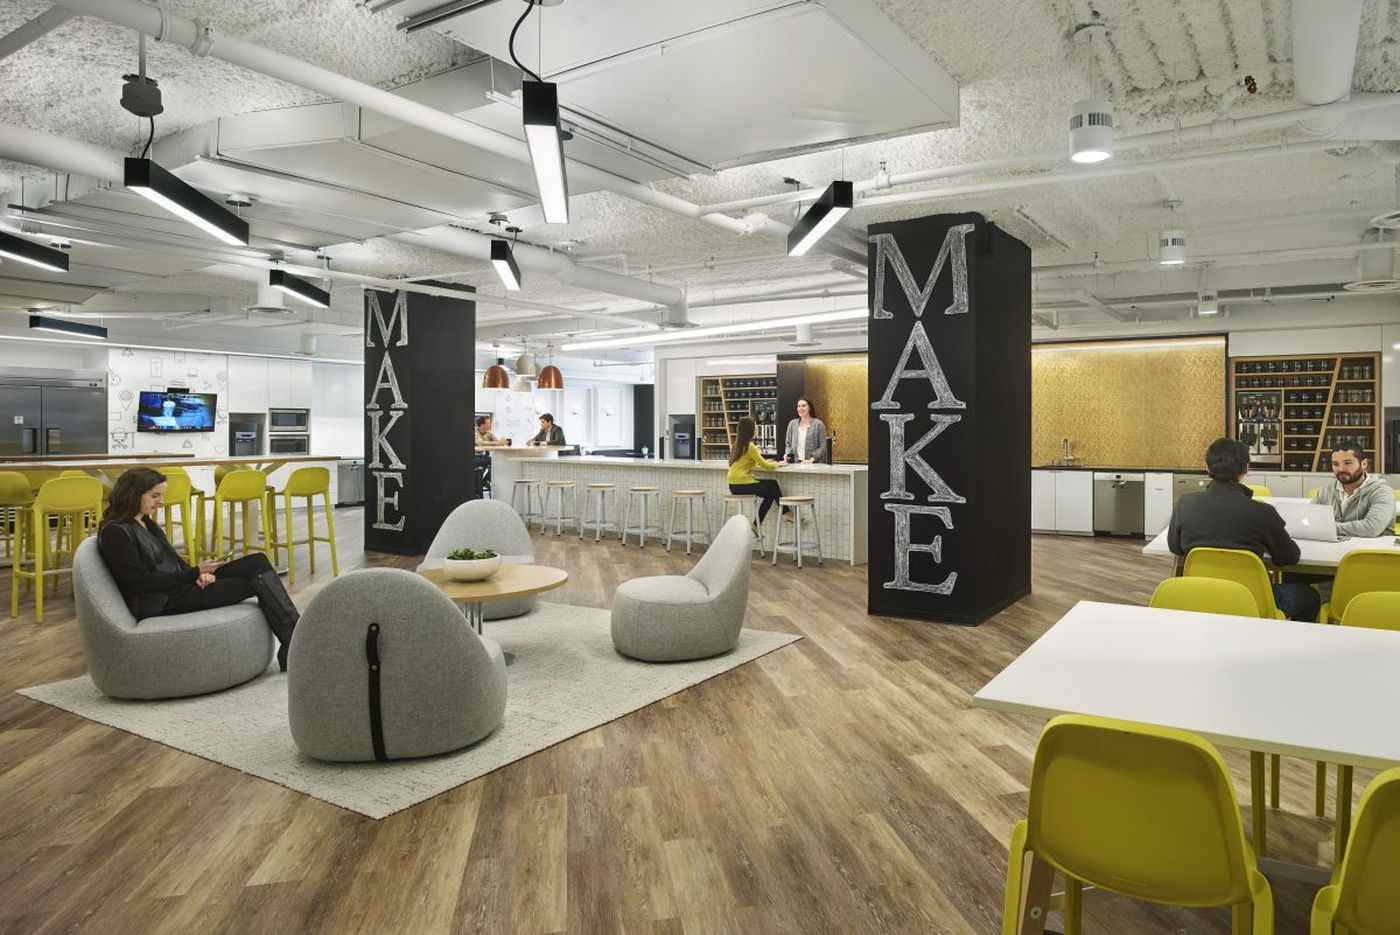 Coworking operator MakeOffices plans third Philly location in Bourse building